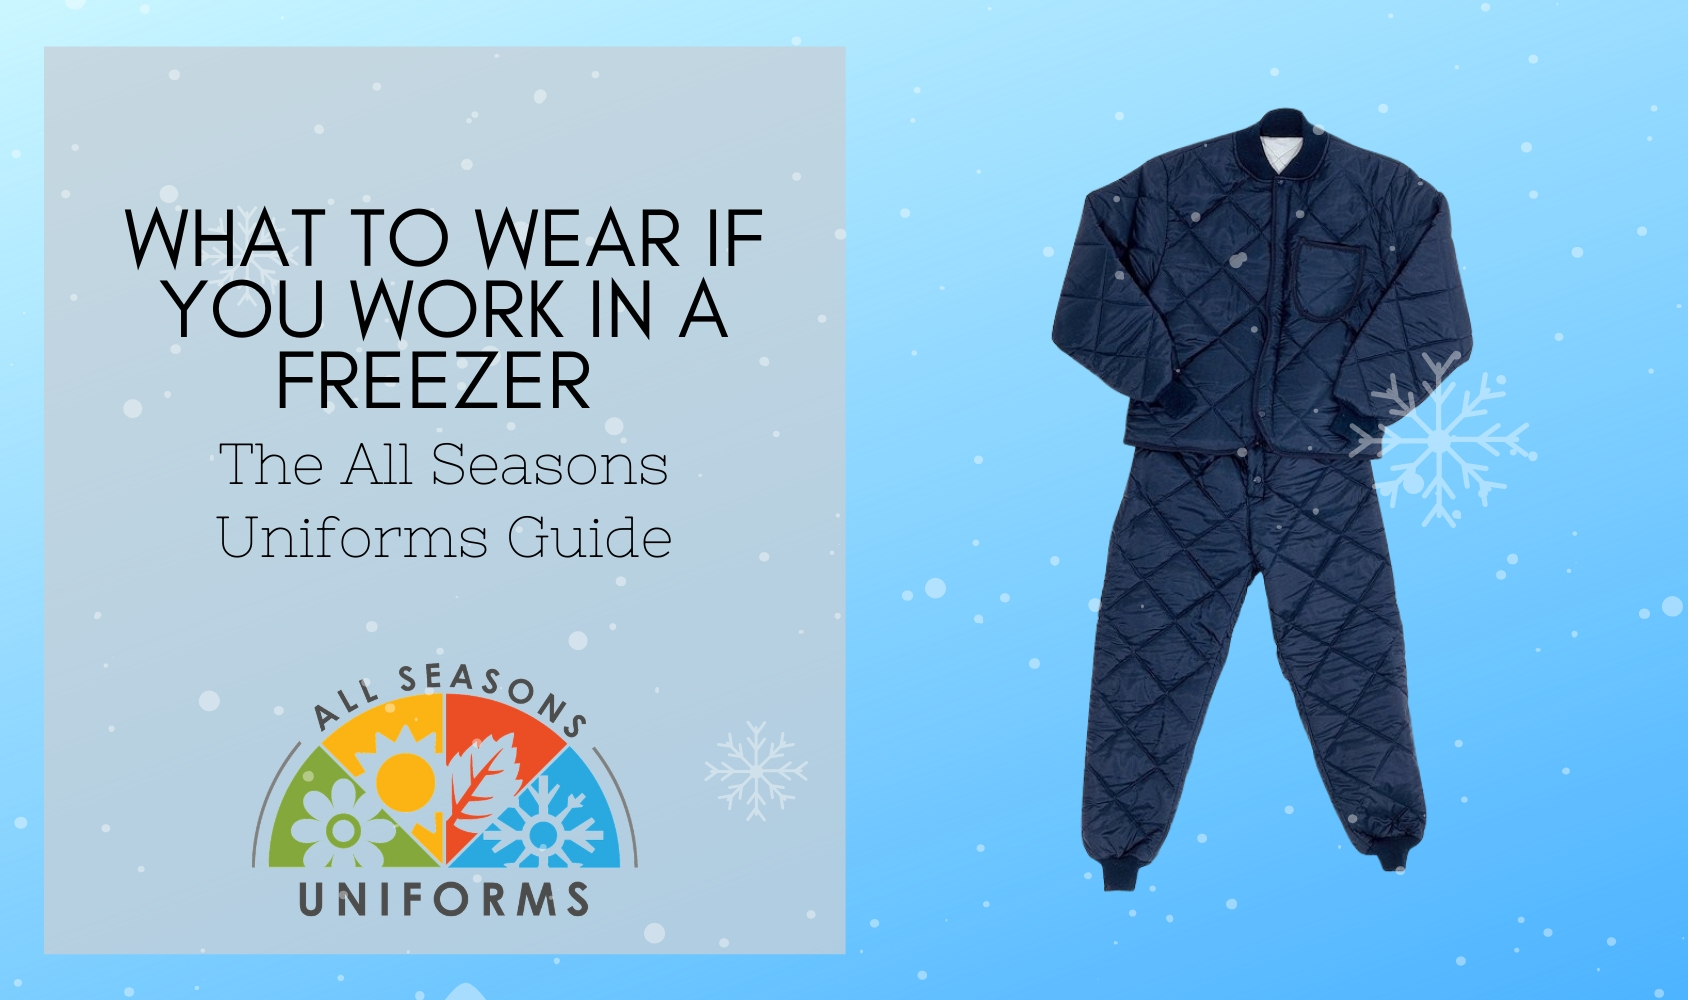 What to Wear if You Work in a Freezer – The All Seasons Uniforms Guide